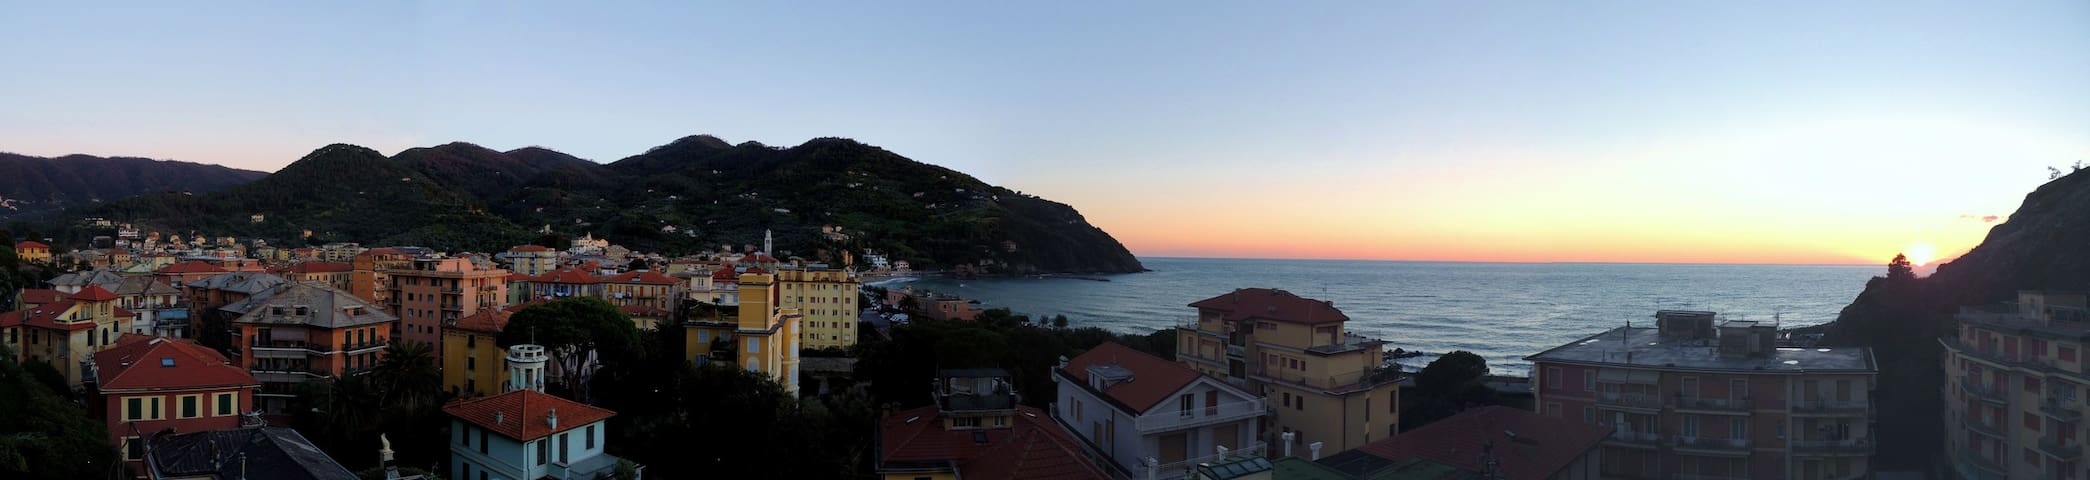 bilocale vicinissimo (50 m) mare - Levanto - Apartment